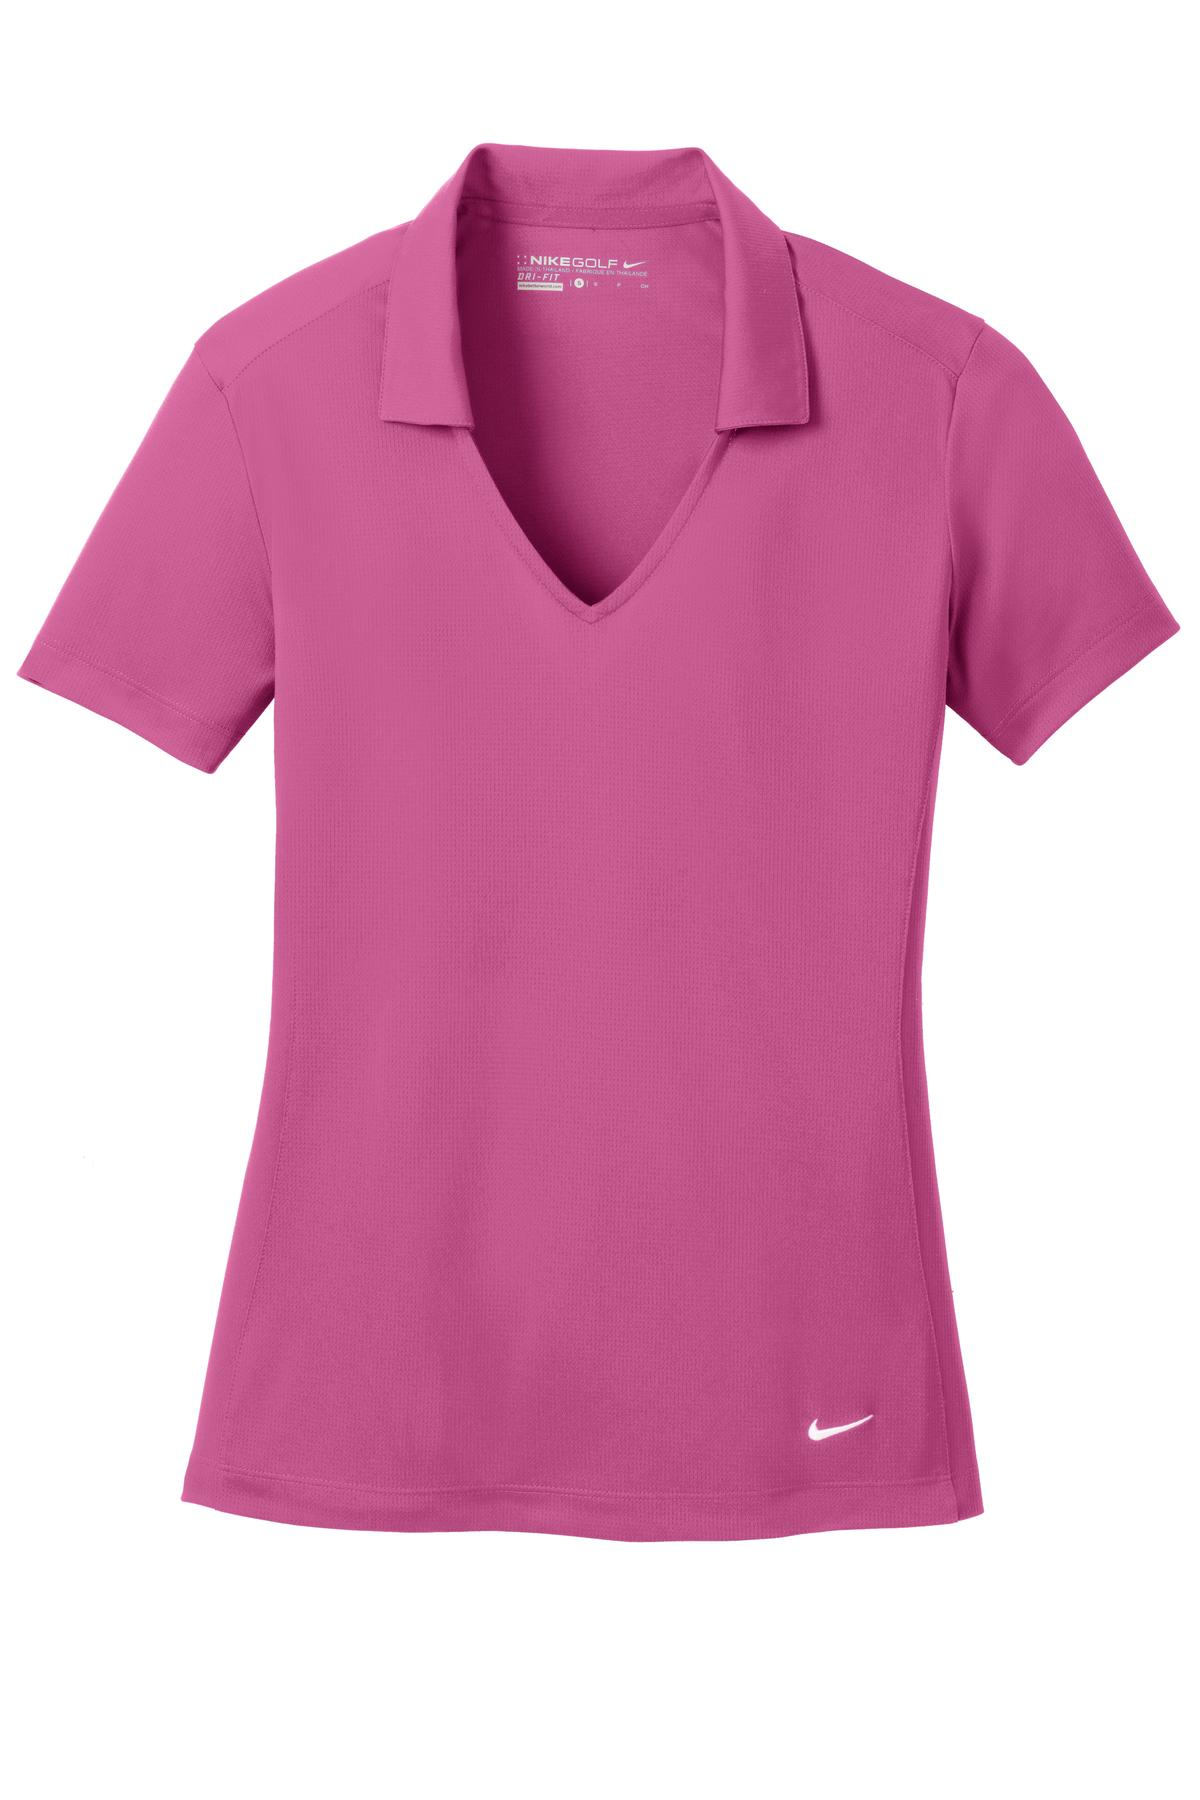 Pink Fire Nike Ladies Dri-FIT Vertical Mesh Polo.